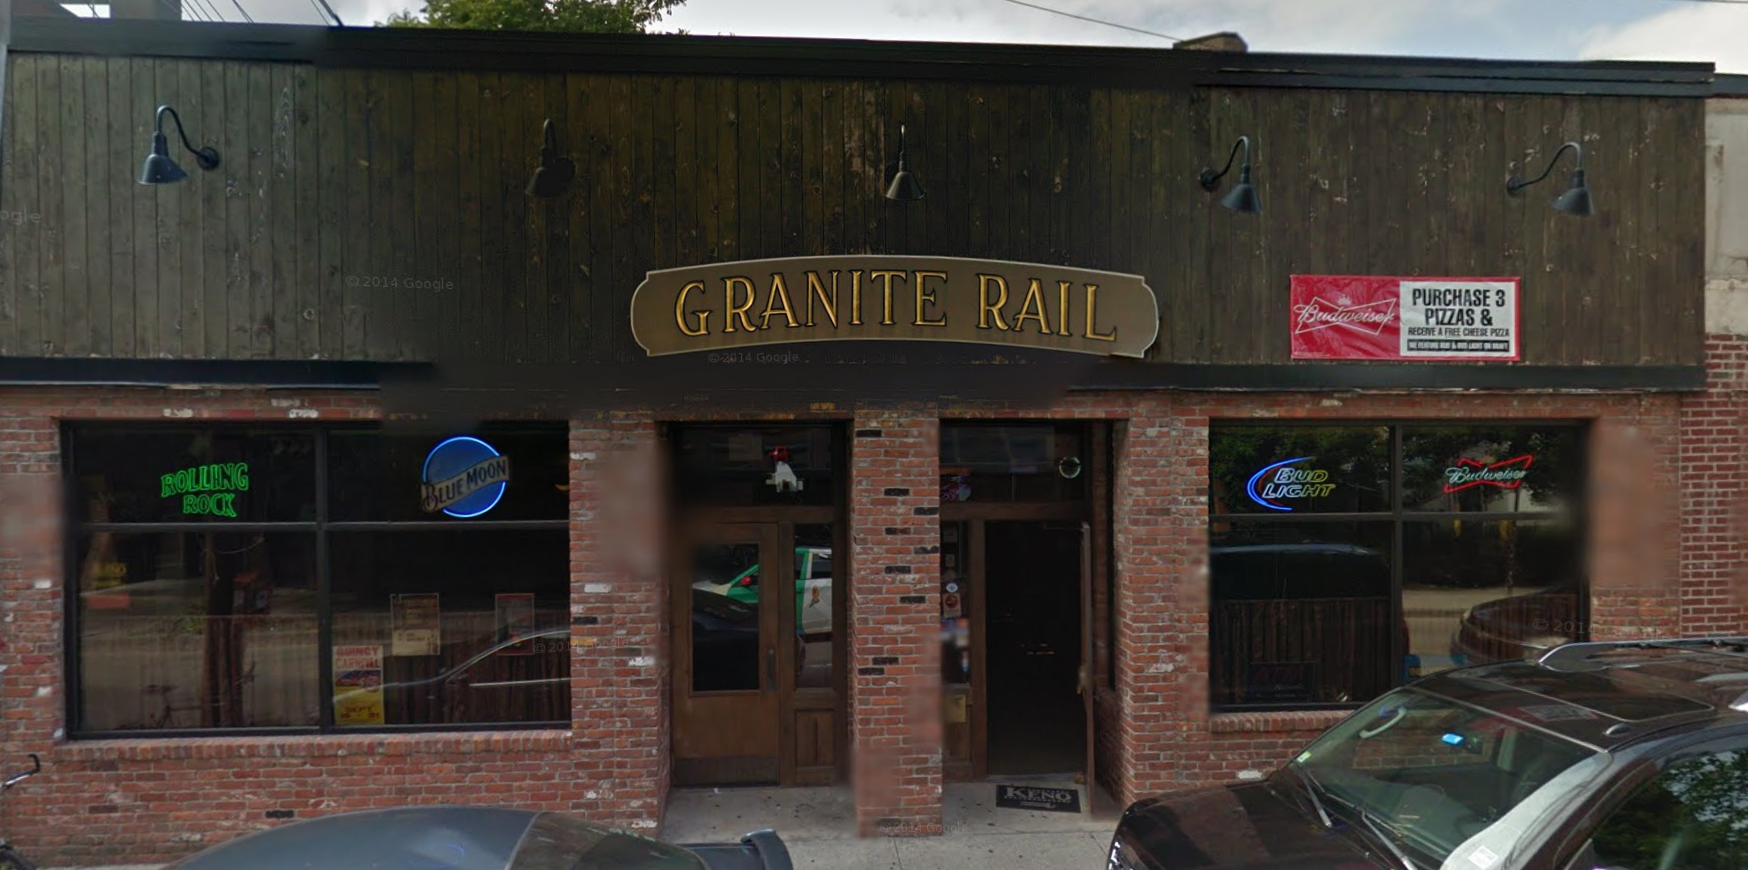 16C will open in the old Granite Rail Tavern space on Cottage Ave.